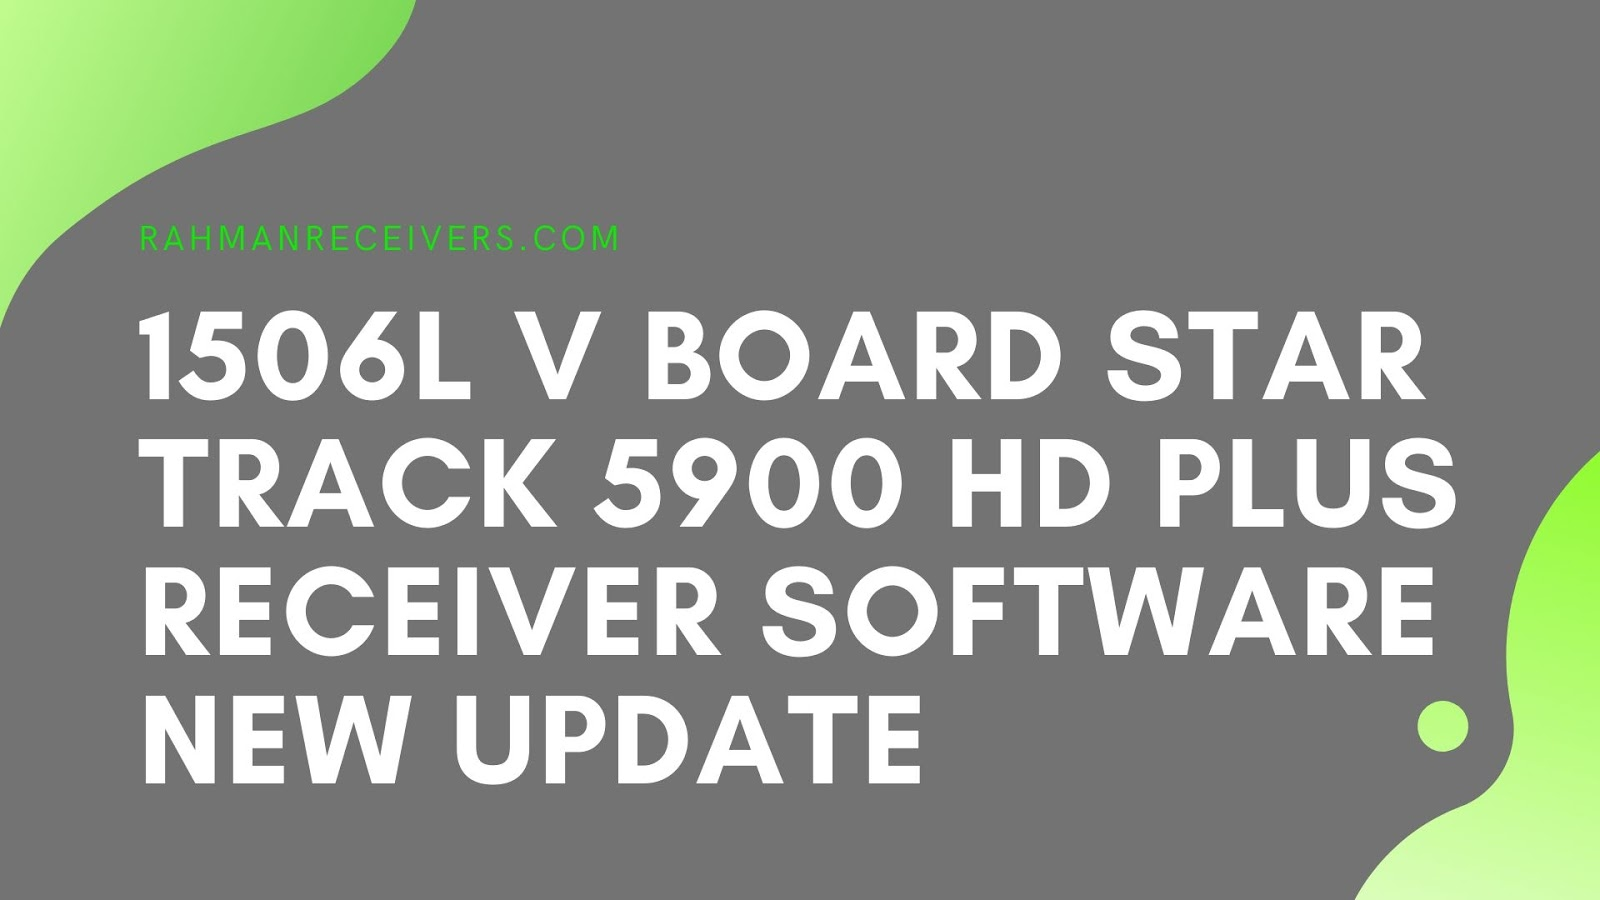 1506L V BOARD STAR TRACK 5900 HD PLUS RECEIVER SOFTWARE NEW UPDATE